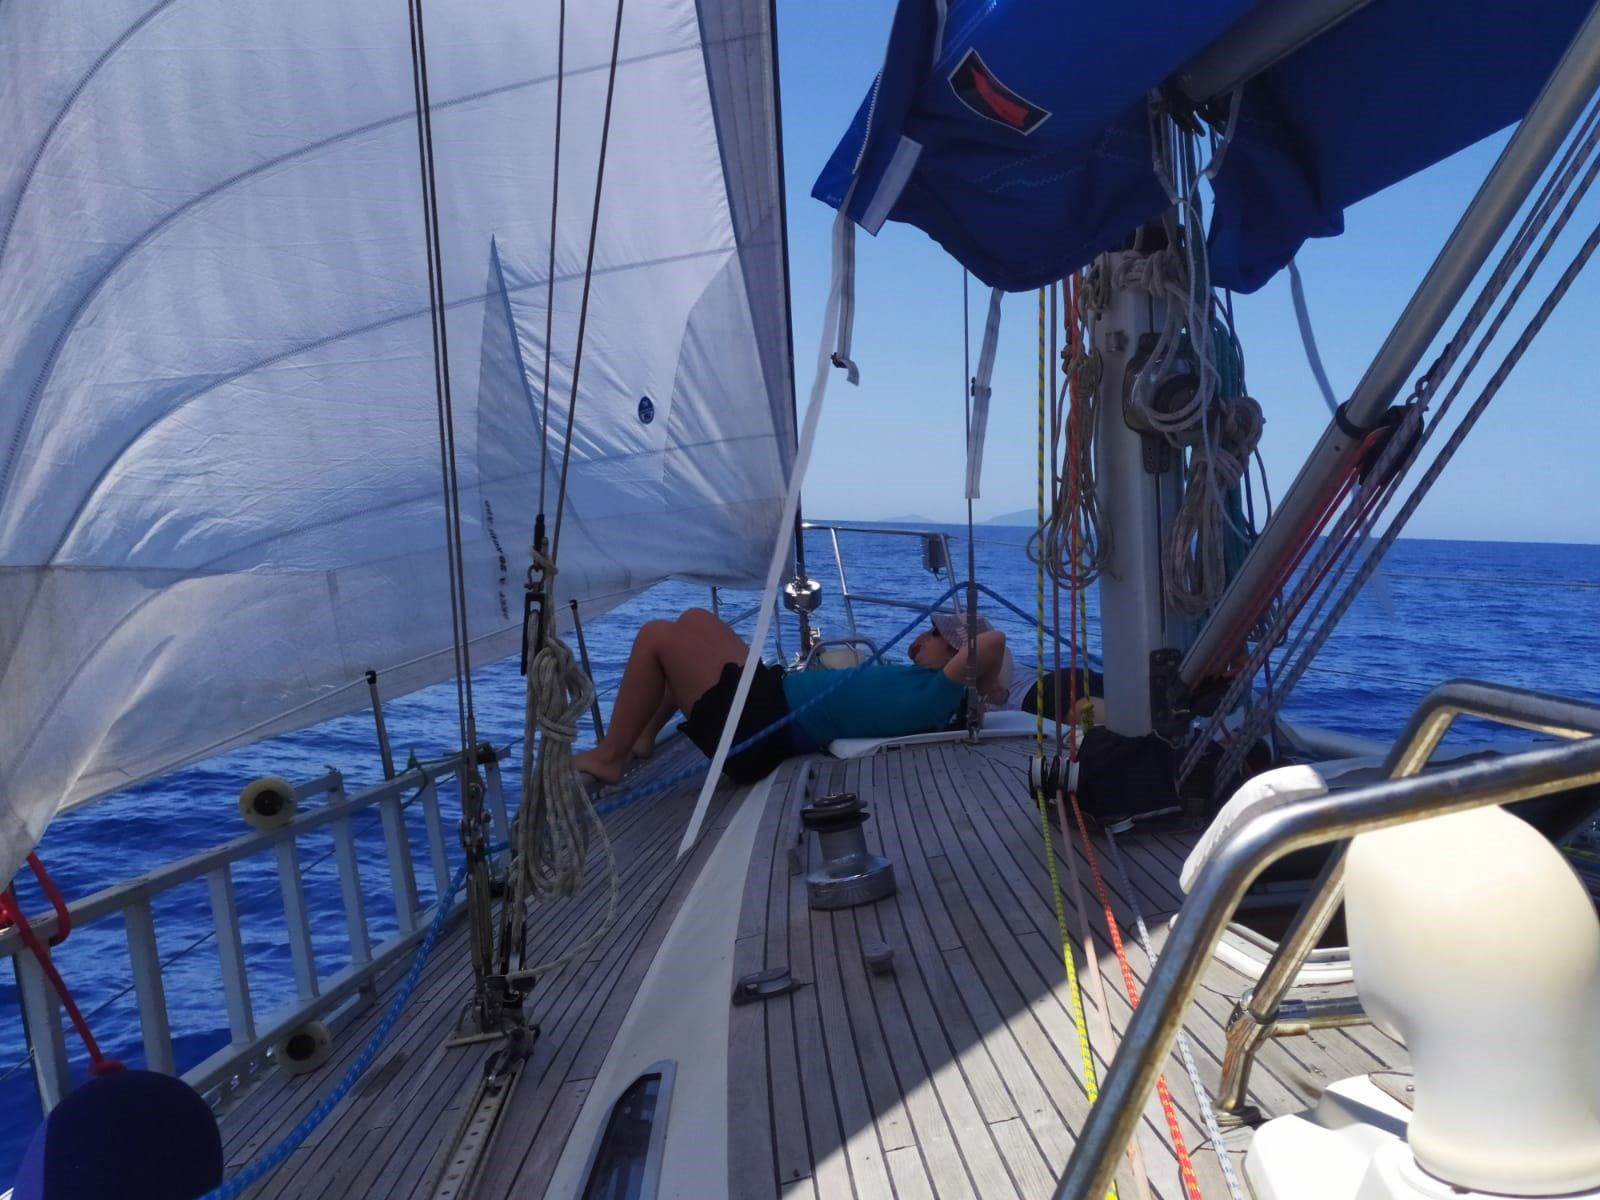 Sardinia sailing excursions - Sail boat2